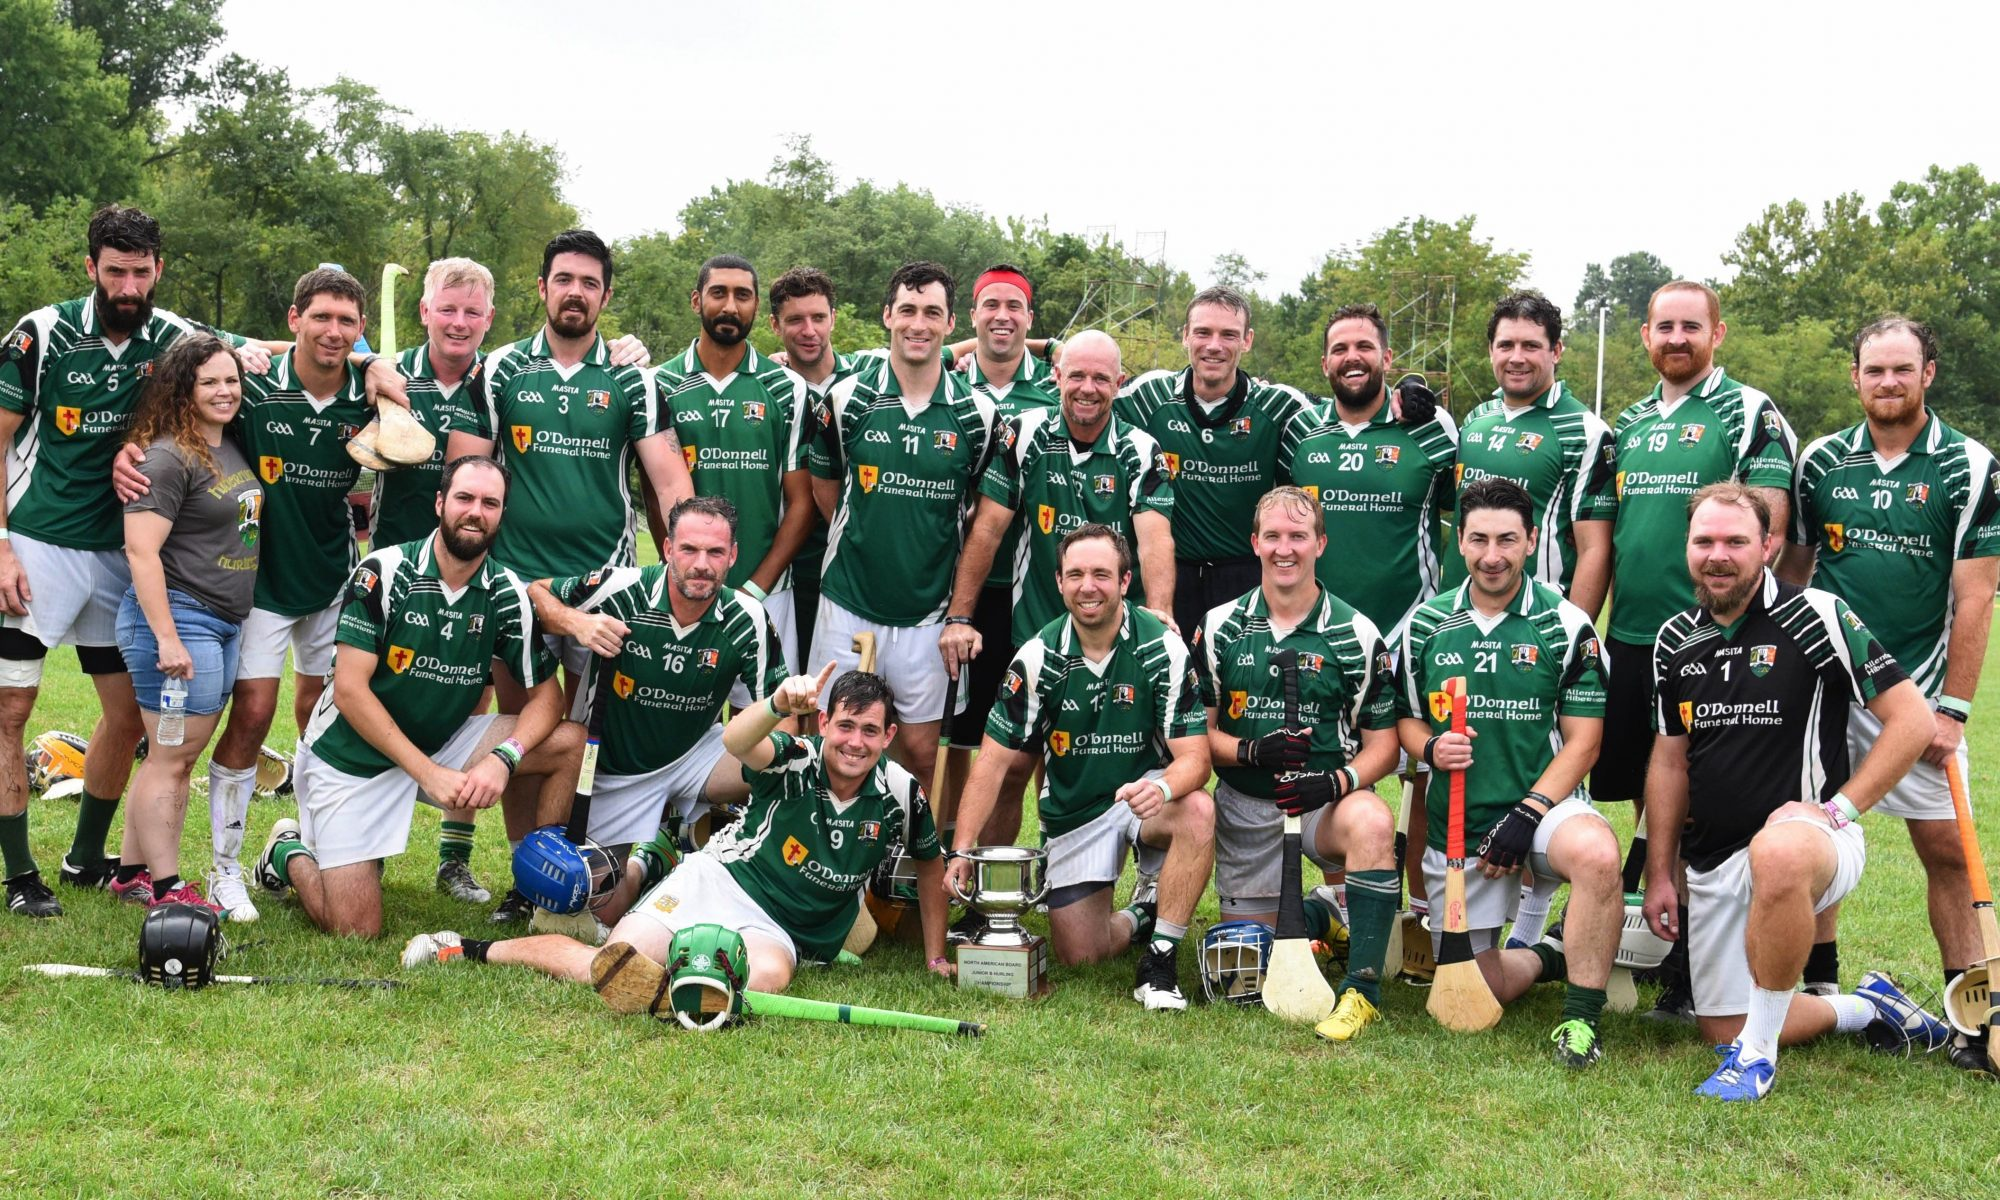 Allentown Hibernians Hurling and Camogie Club